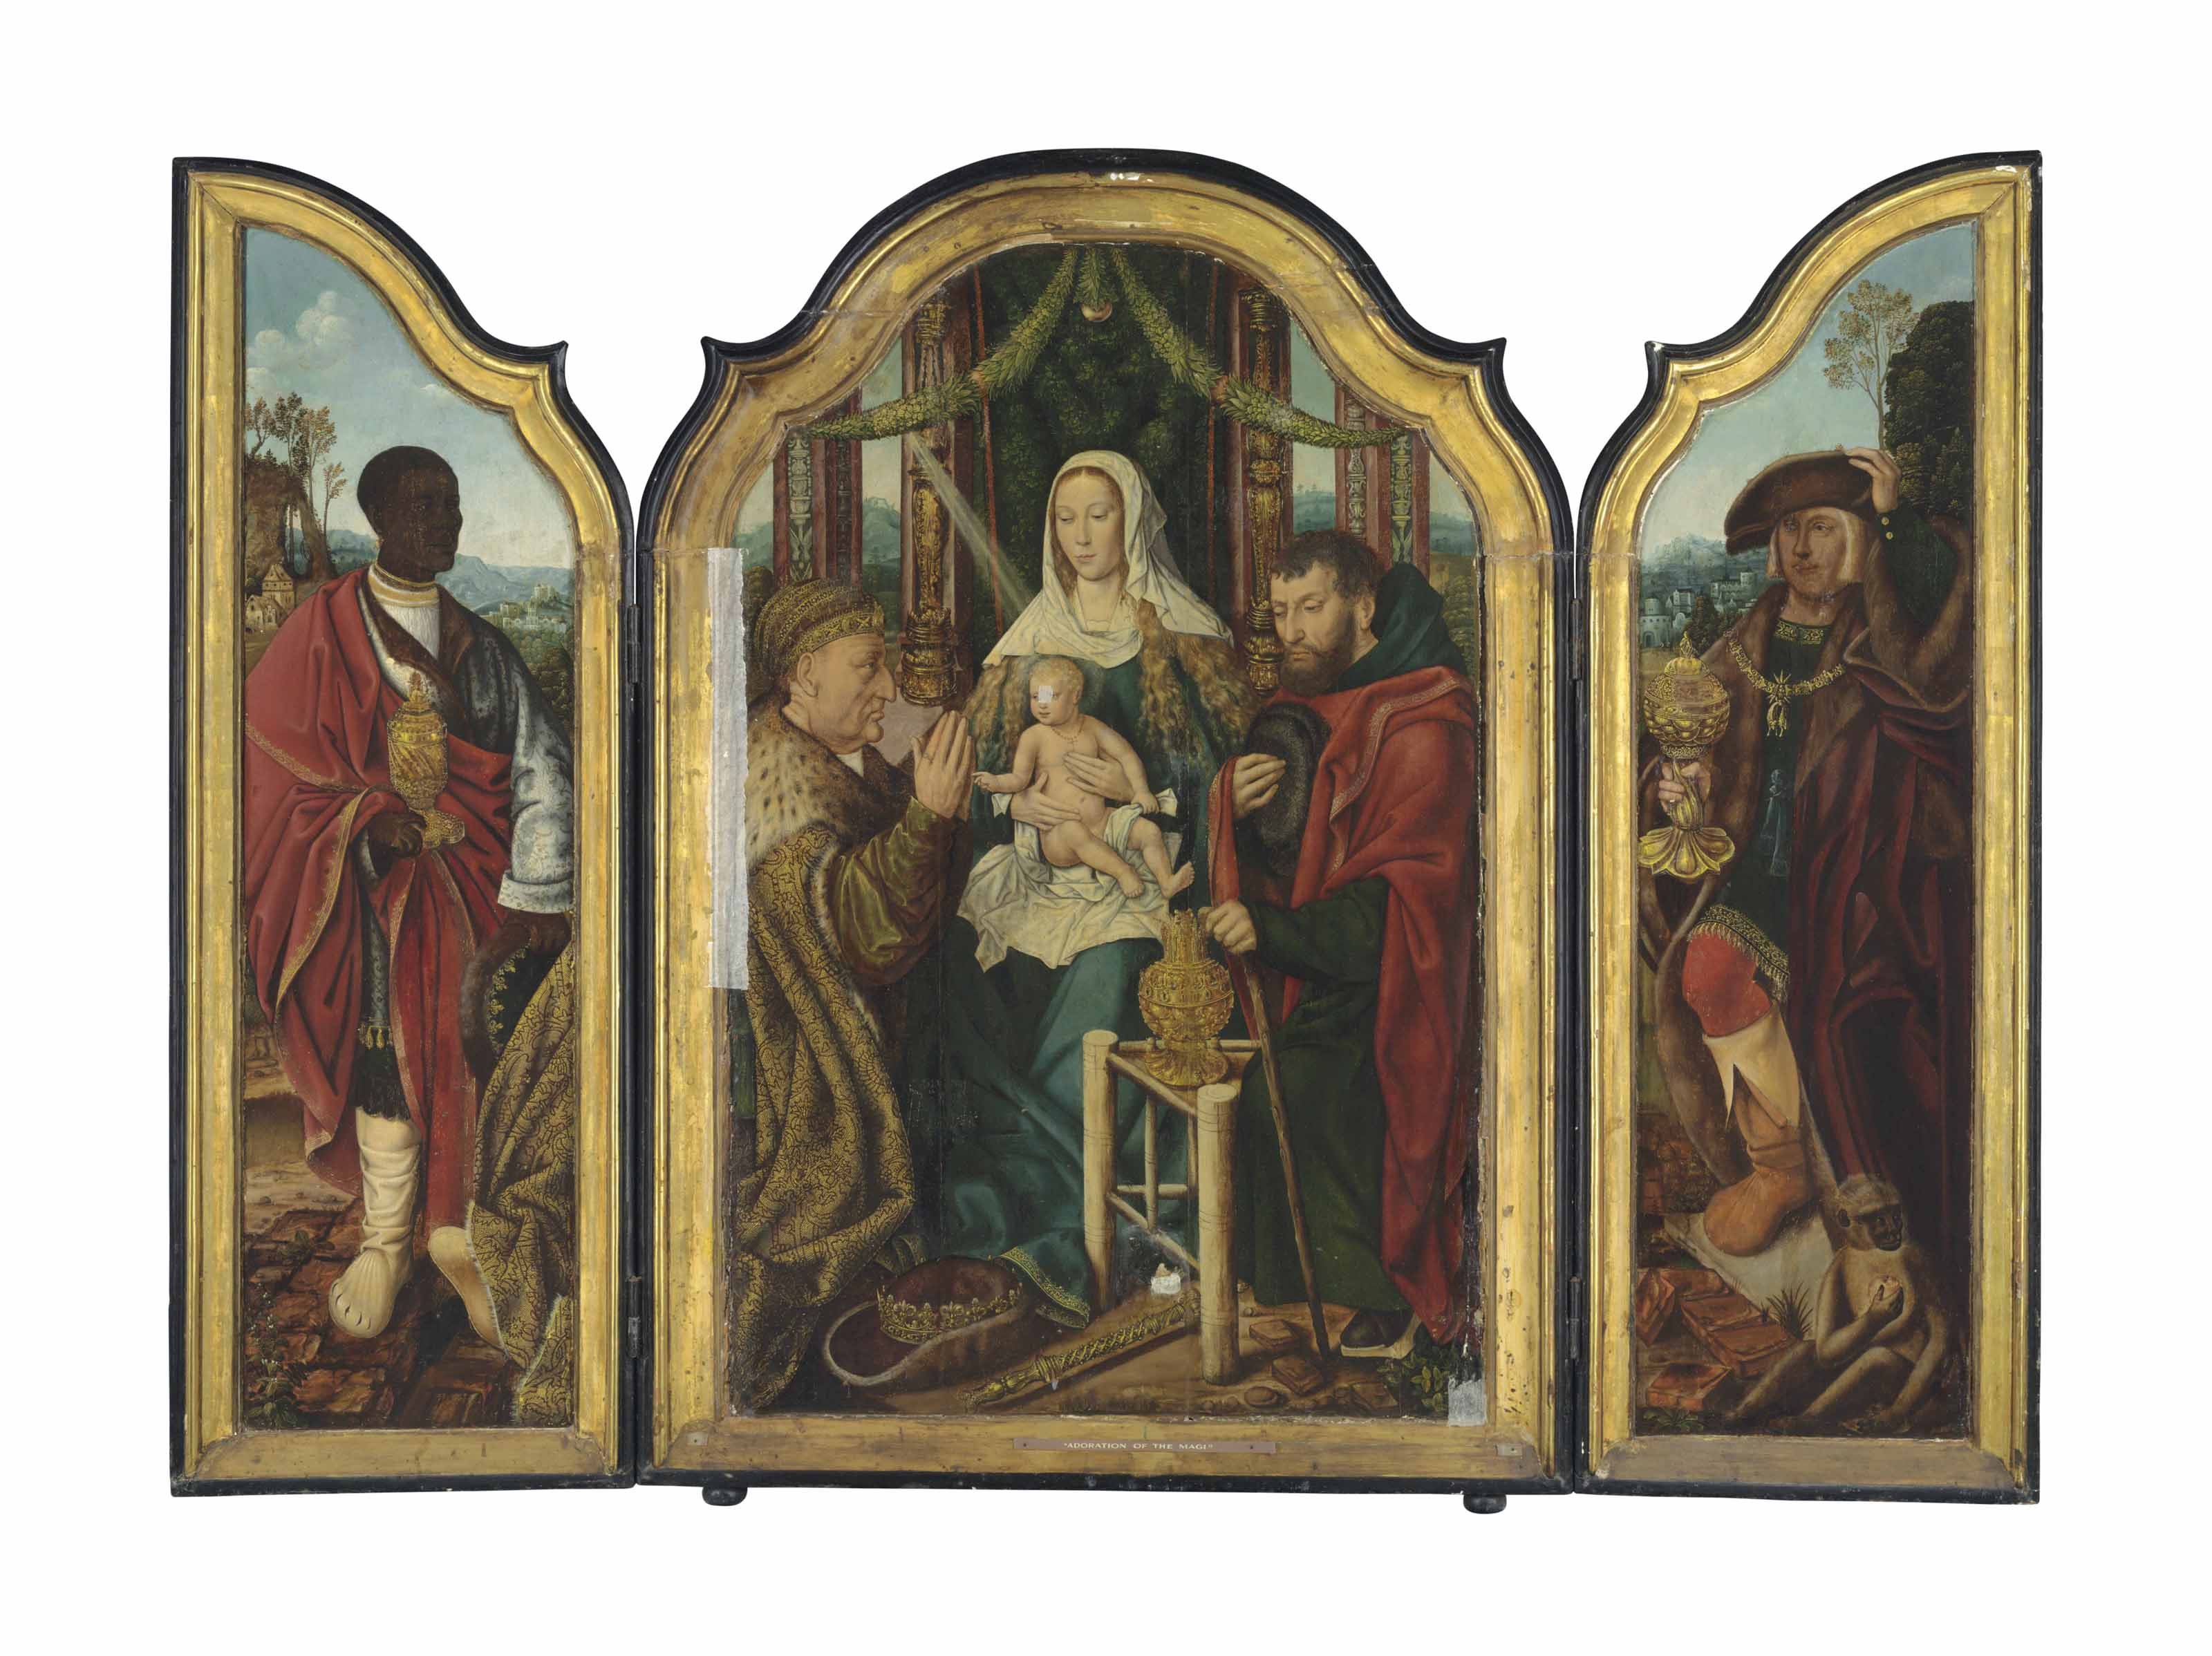 A triptych: central panel: The Holy Family with Frederick III, Holy Roman Emperor as Melchior offering gold to the Christ Child; left wing: Balthasar offering myrrh; right wing: Maximilian I, Holy Roman Emperor, as Caspar offering incense; outer panels: The Annunciation